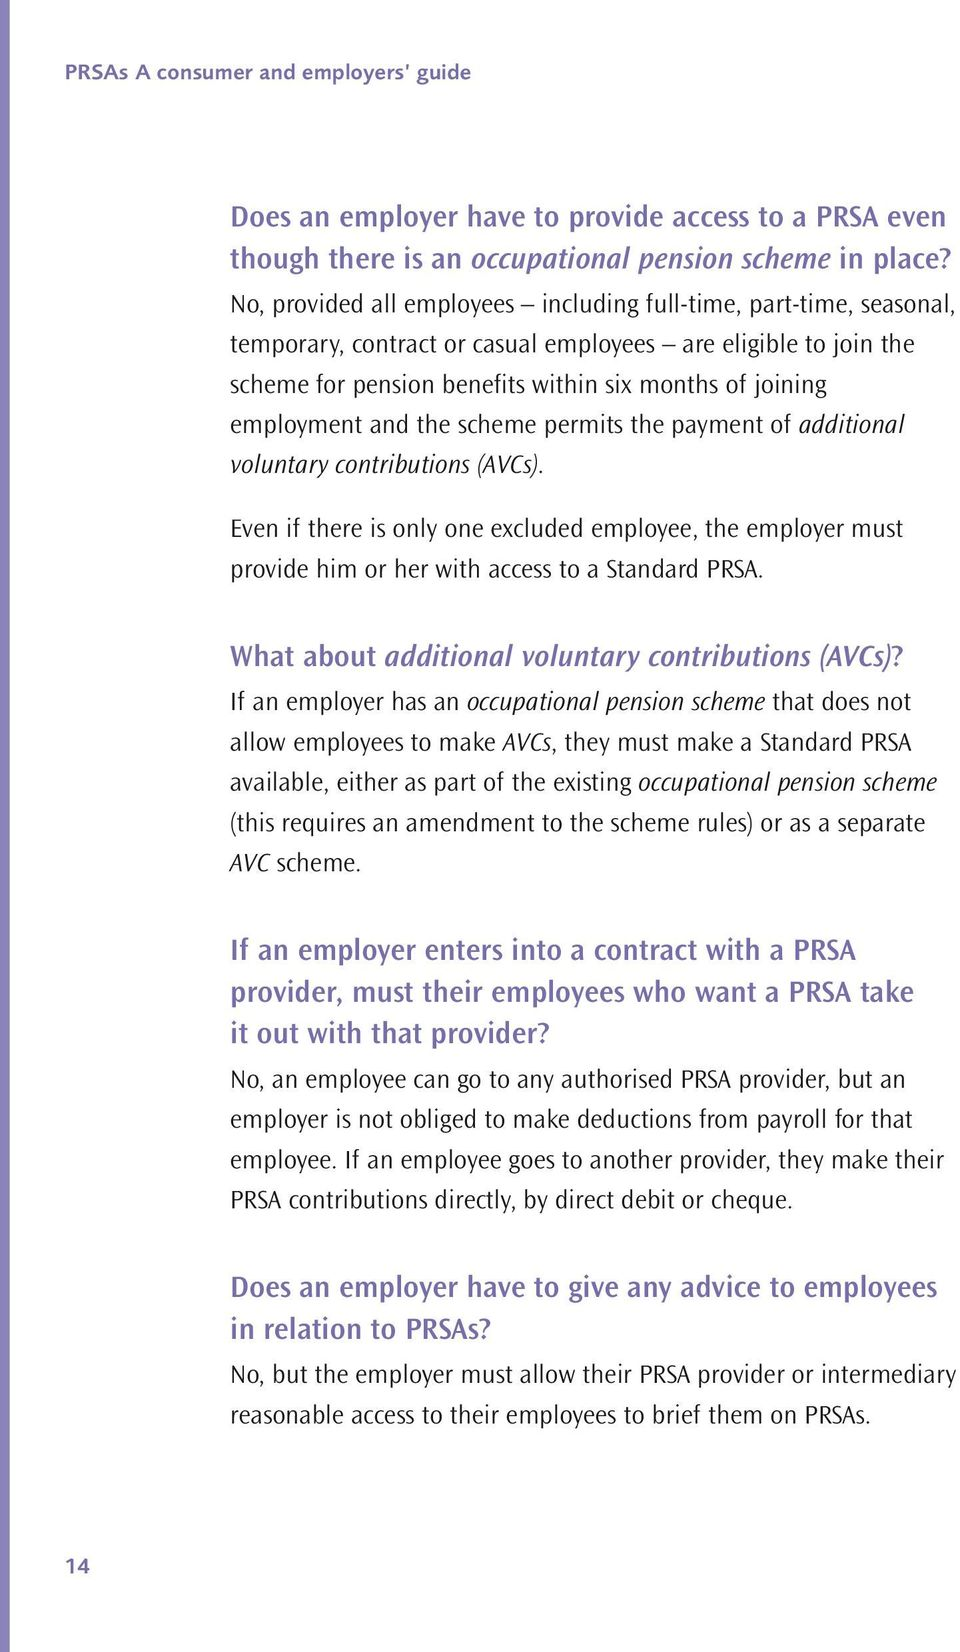 scheme permits the paymet of additioal volutary cotributios (AVCs). Eve if there is oly oe excluded employee, the employer must provide him or her with access to a Stadard PRSA.